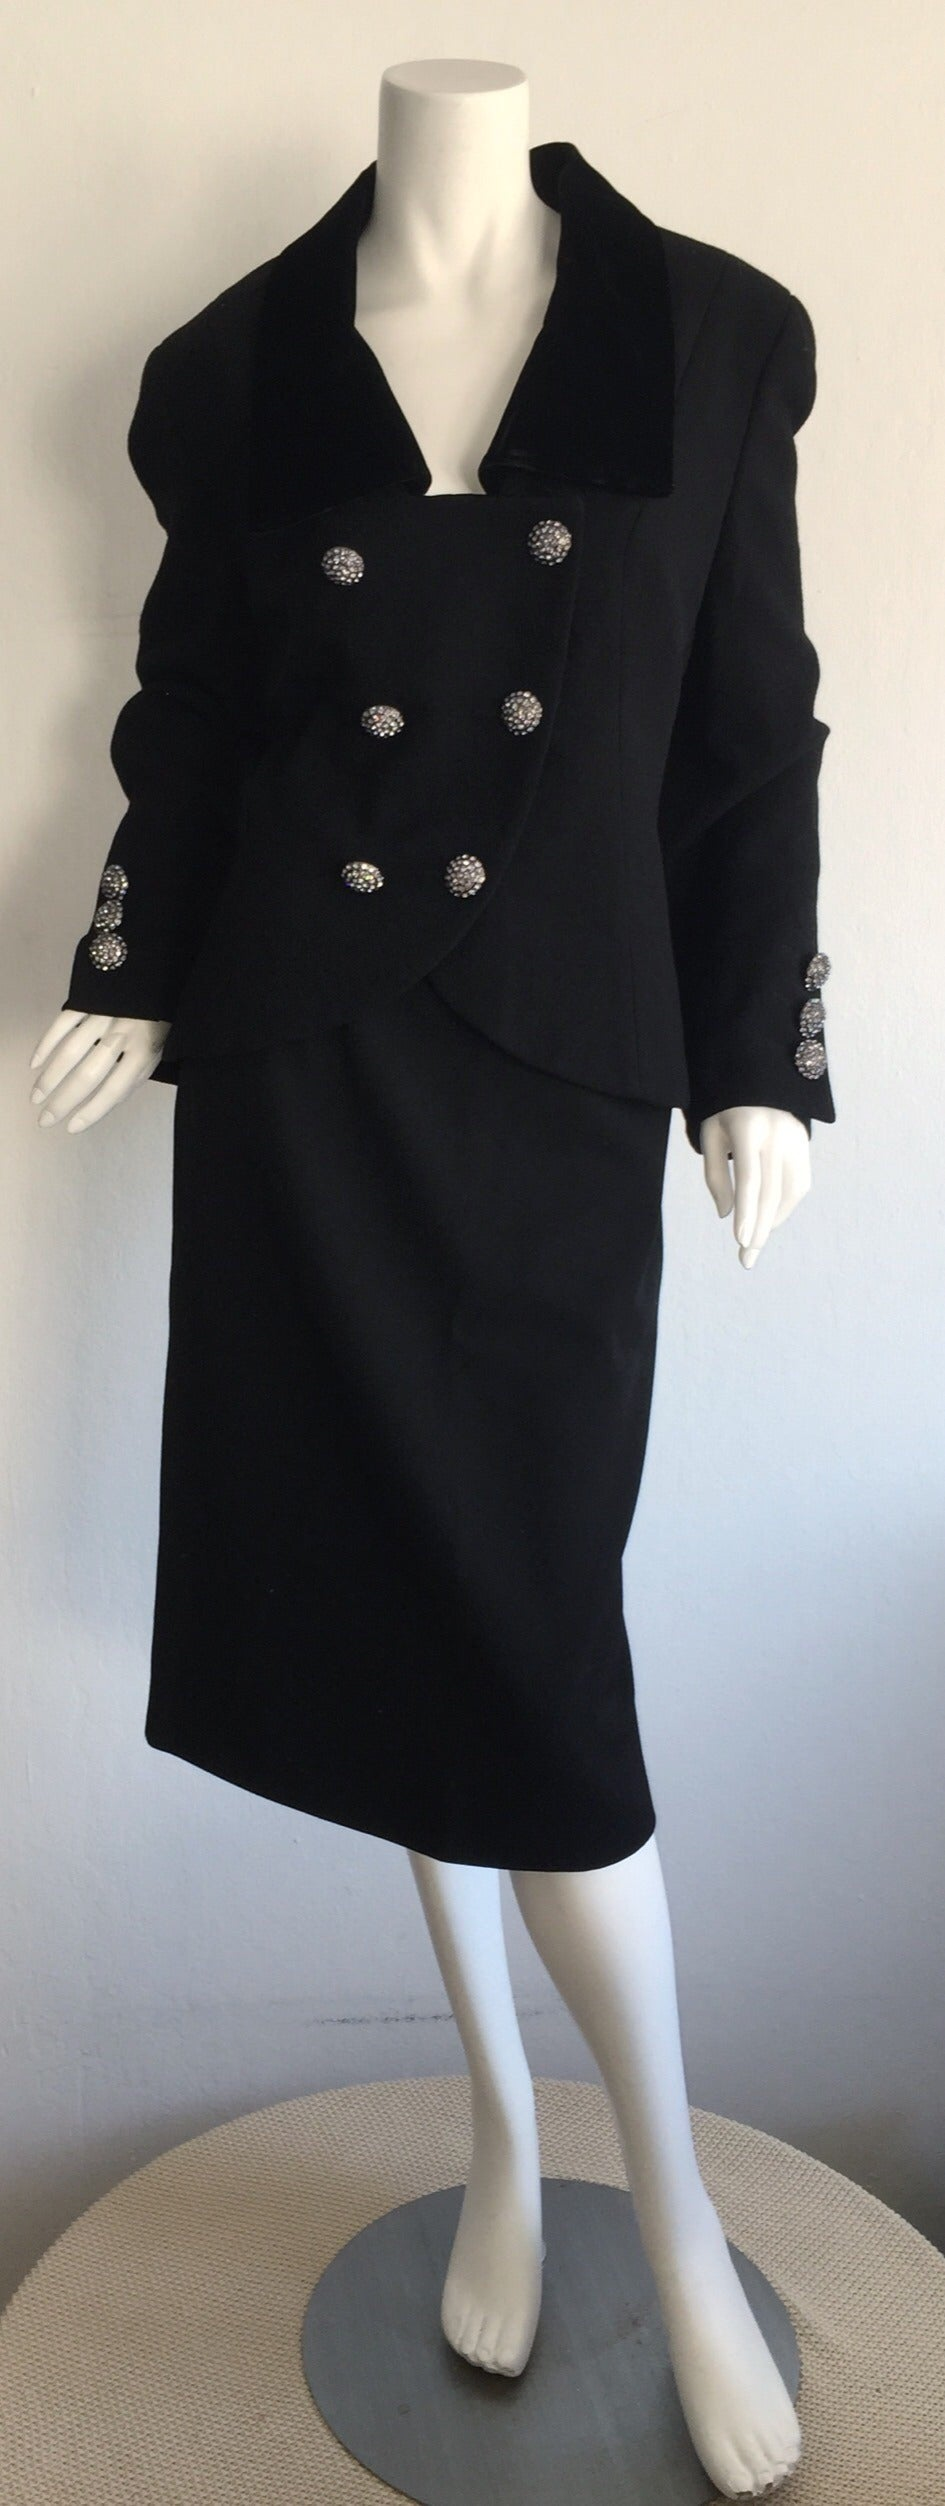 Vintage Andrea Odicini Couture Black Skirt Suit + Rhinestone Buttons Size Large For Sale 5